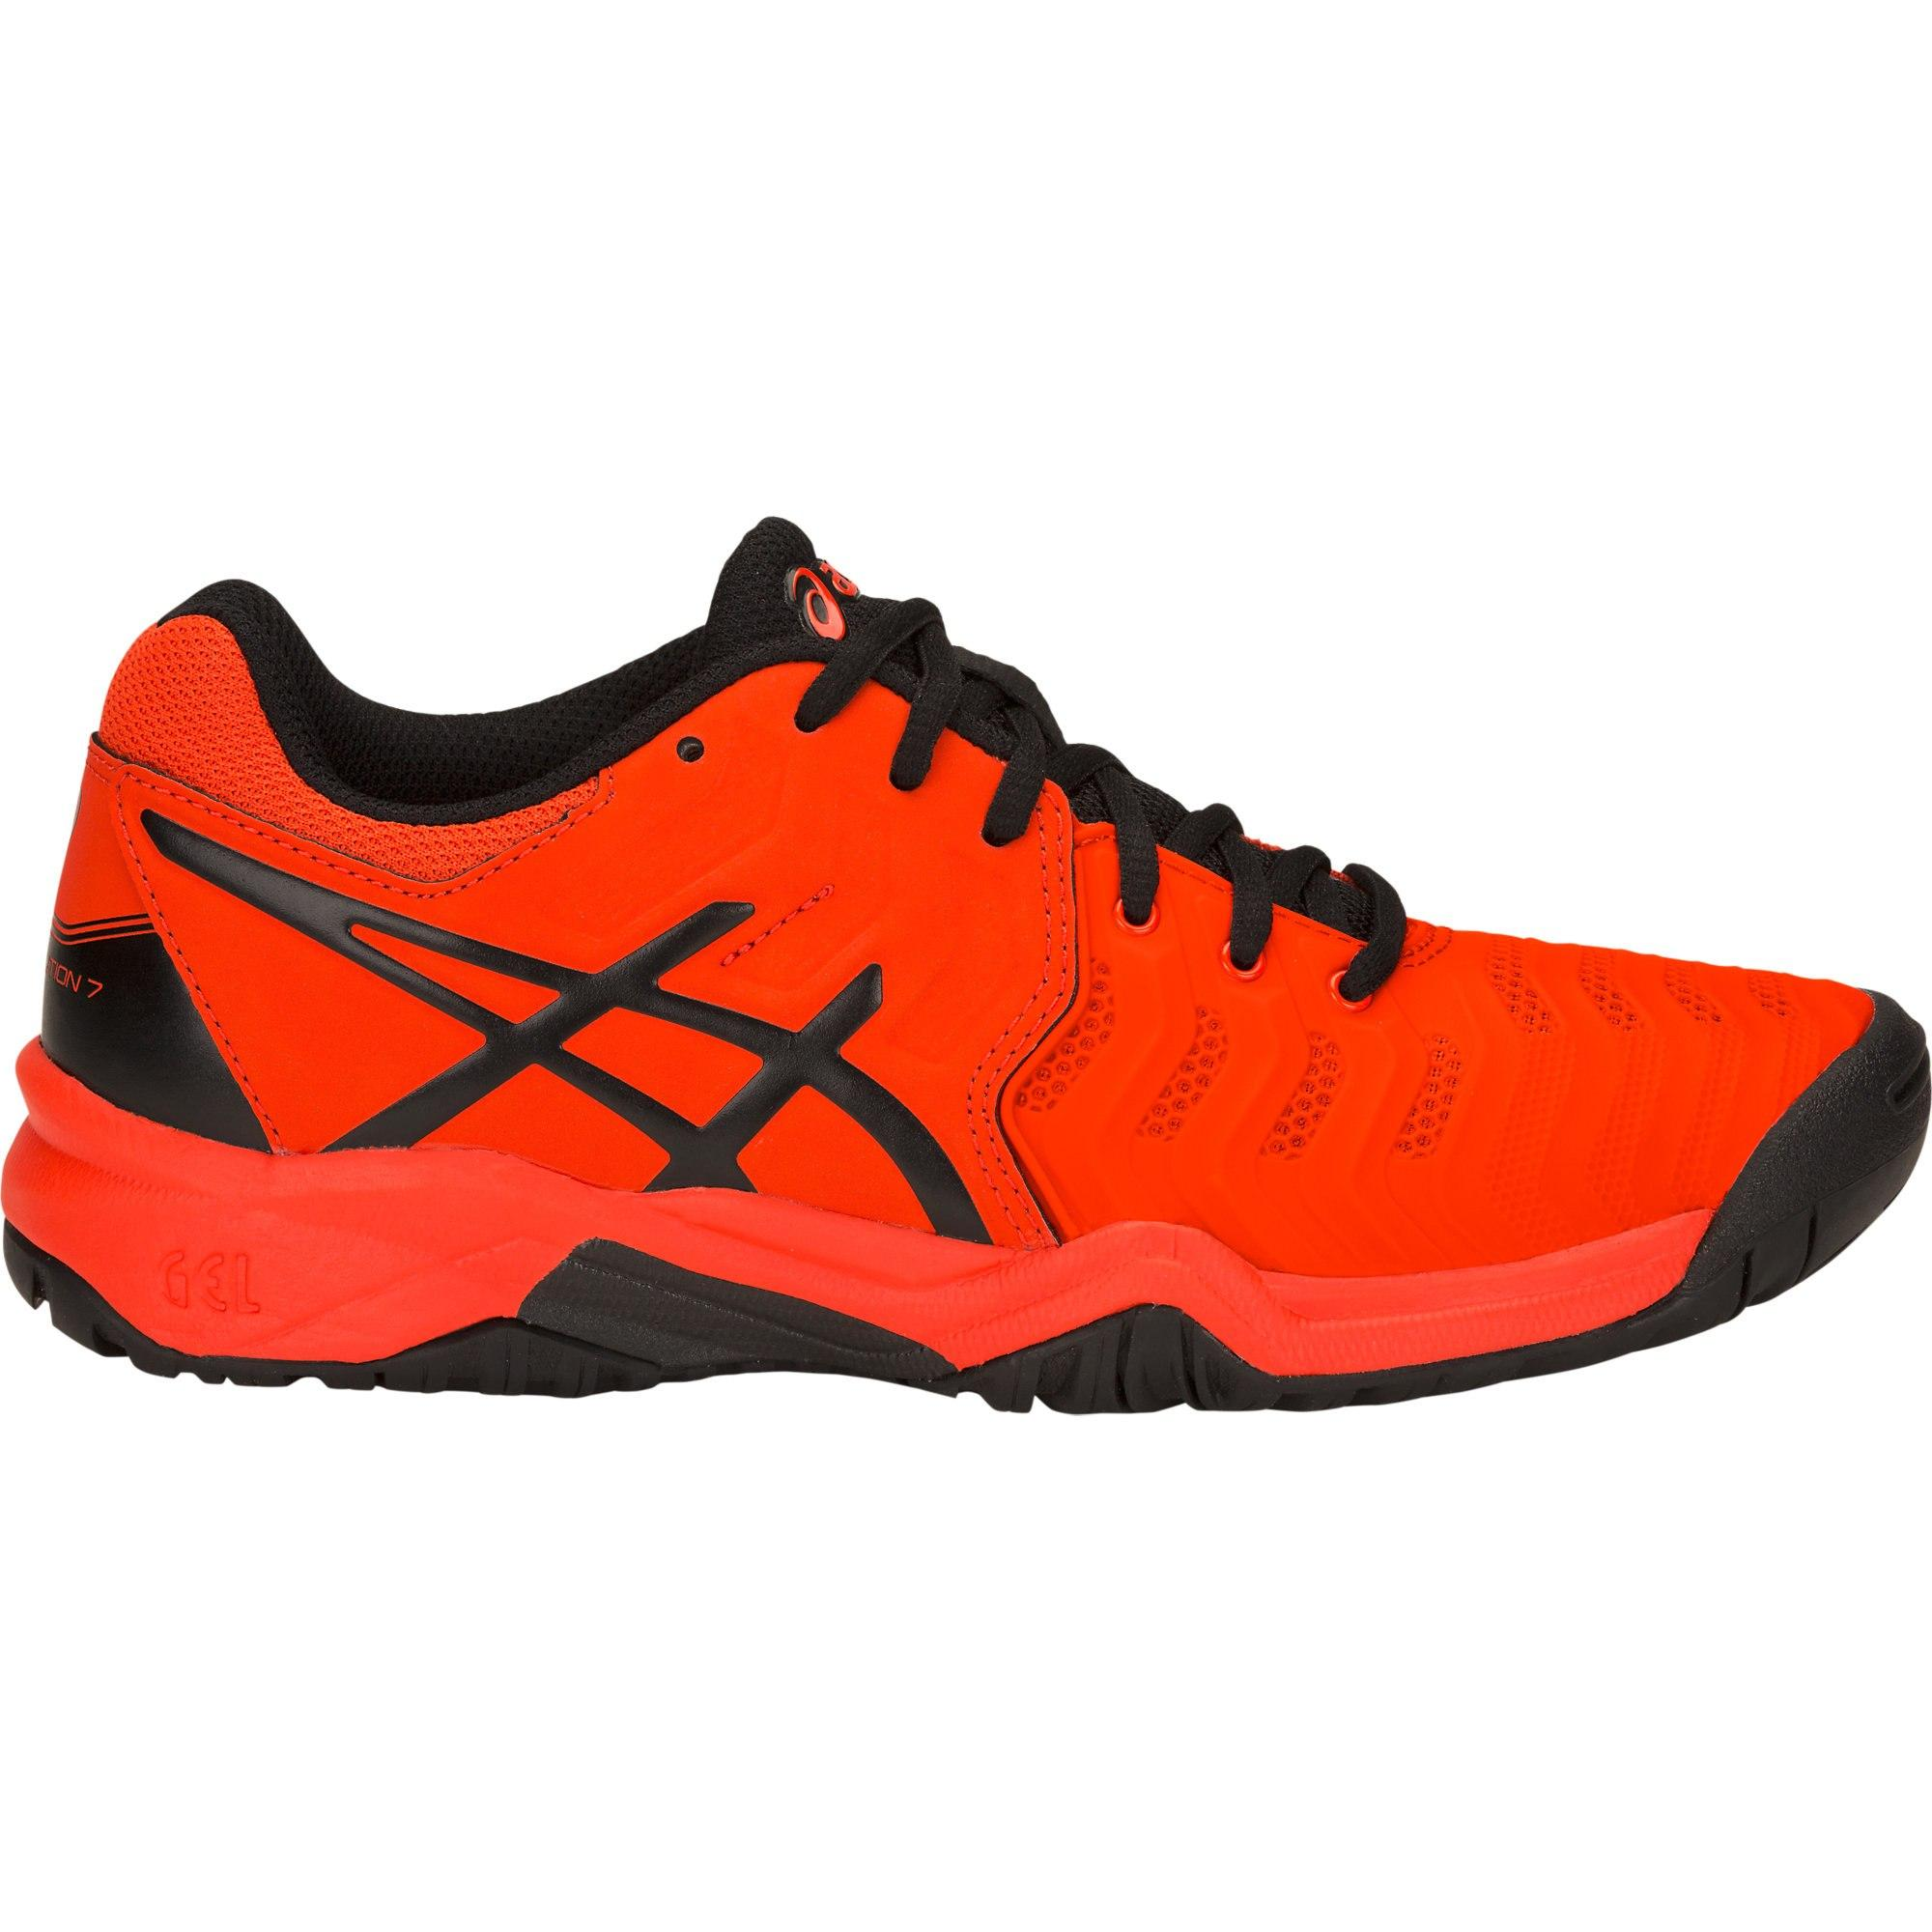 new styles 00468 c2553 Asics Kids GEL-Resolution 7 GS Tennis Shoes - Cherry Tomato Black